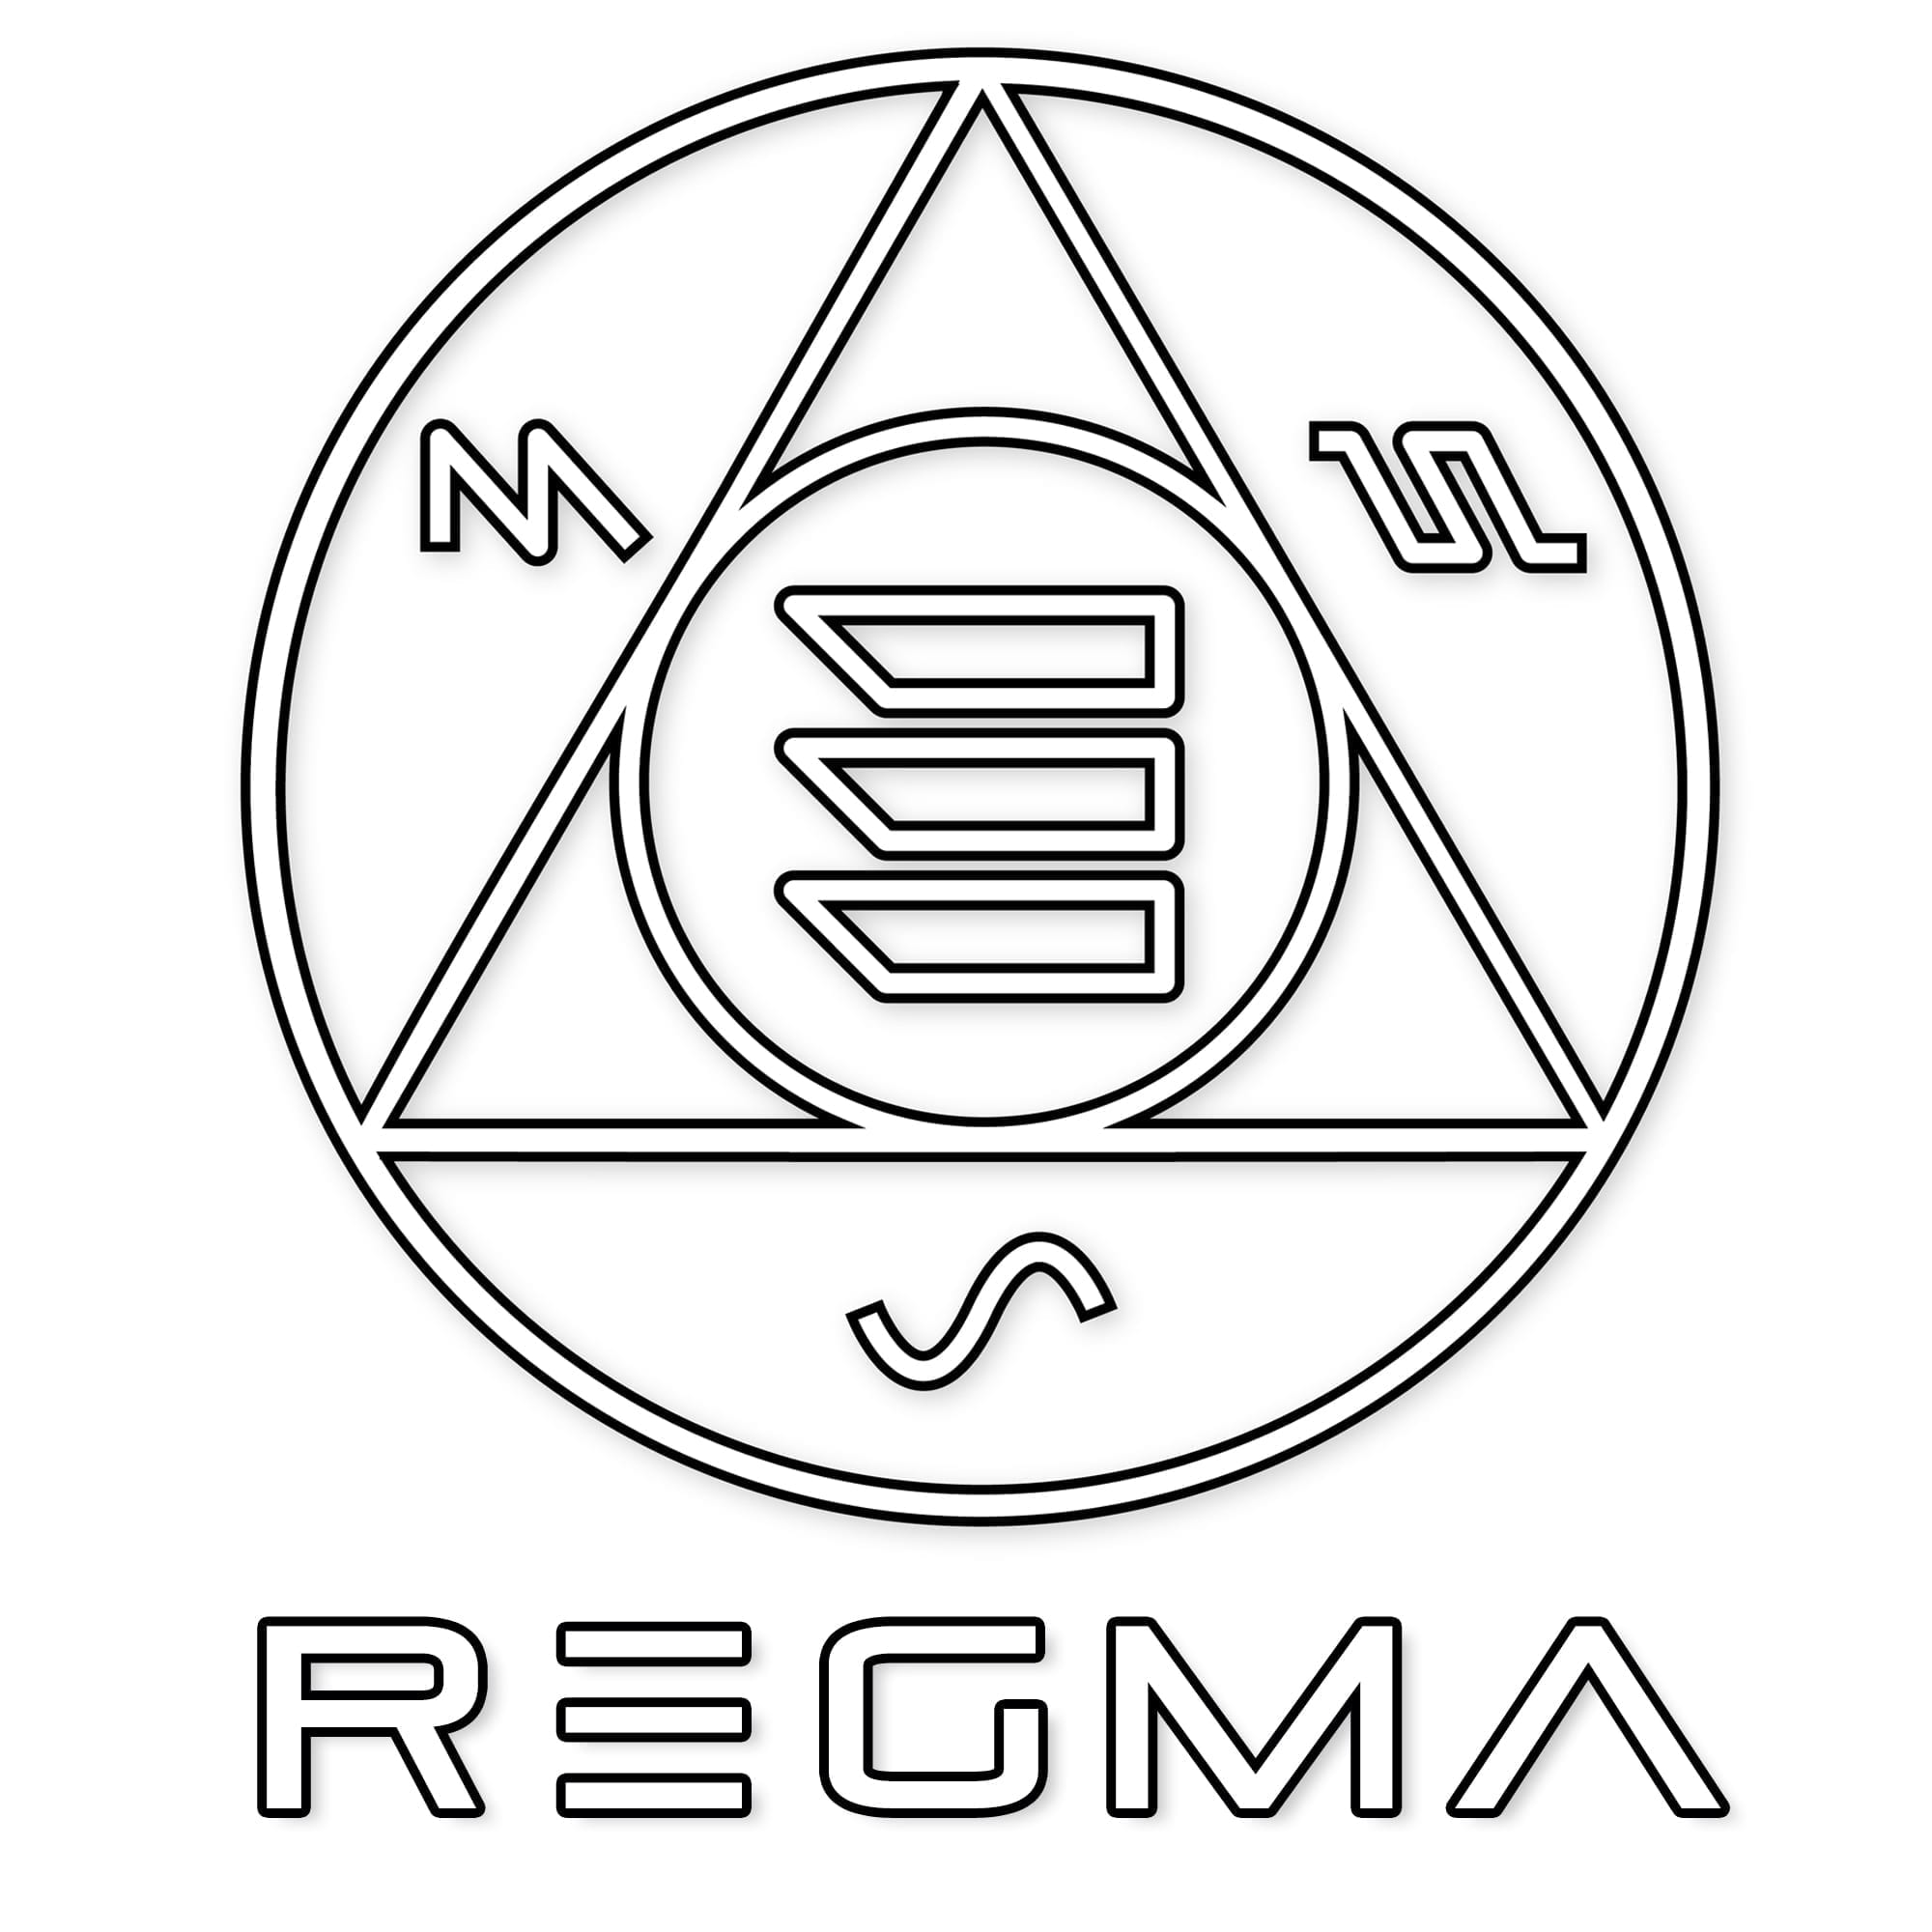 R3gma Dance Music Promotion